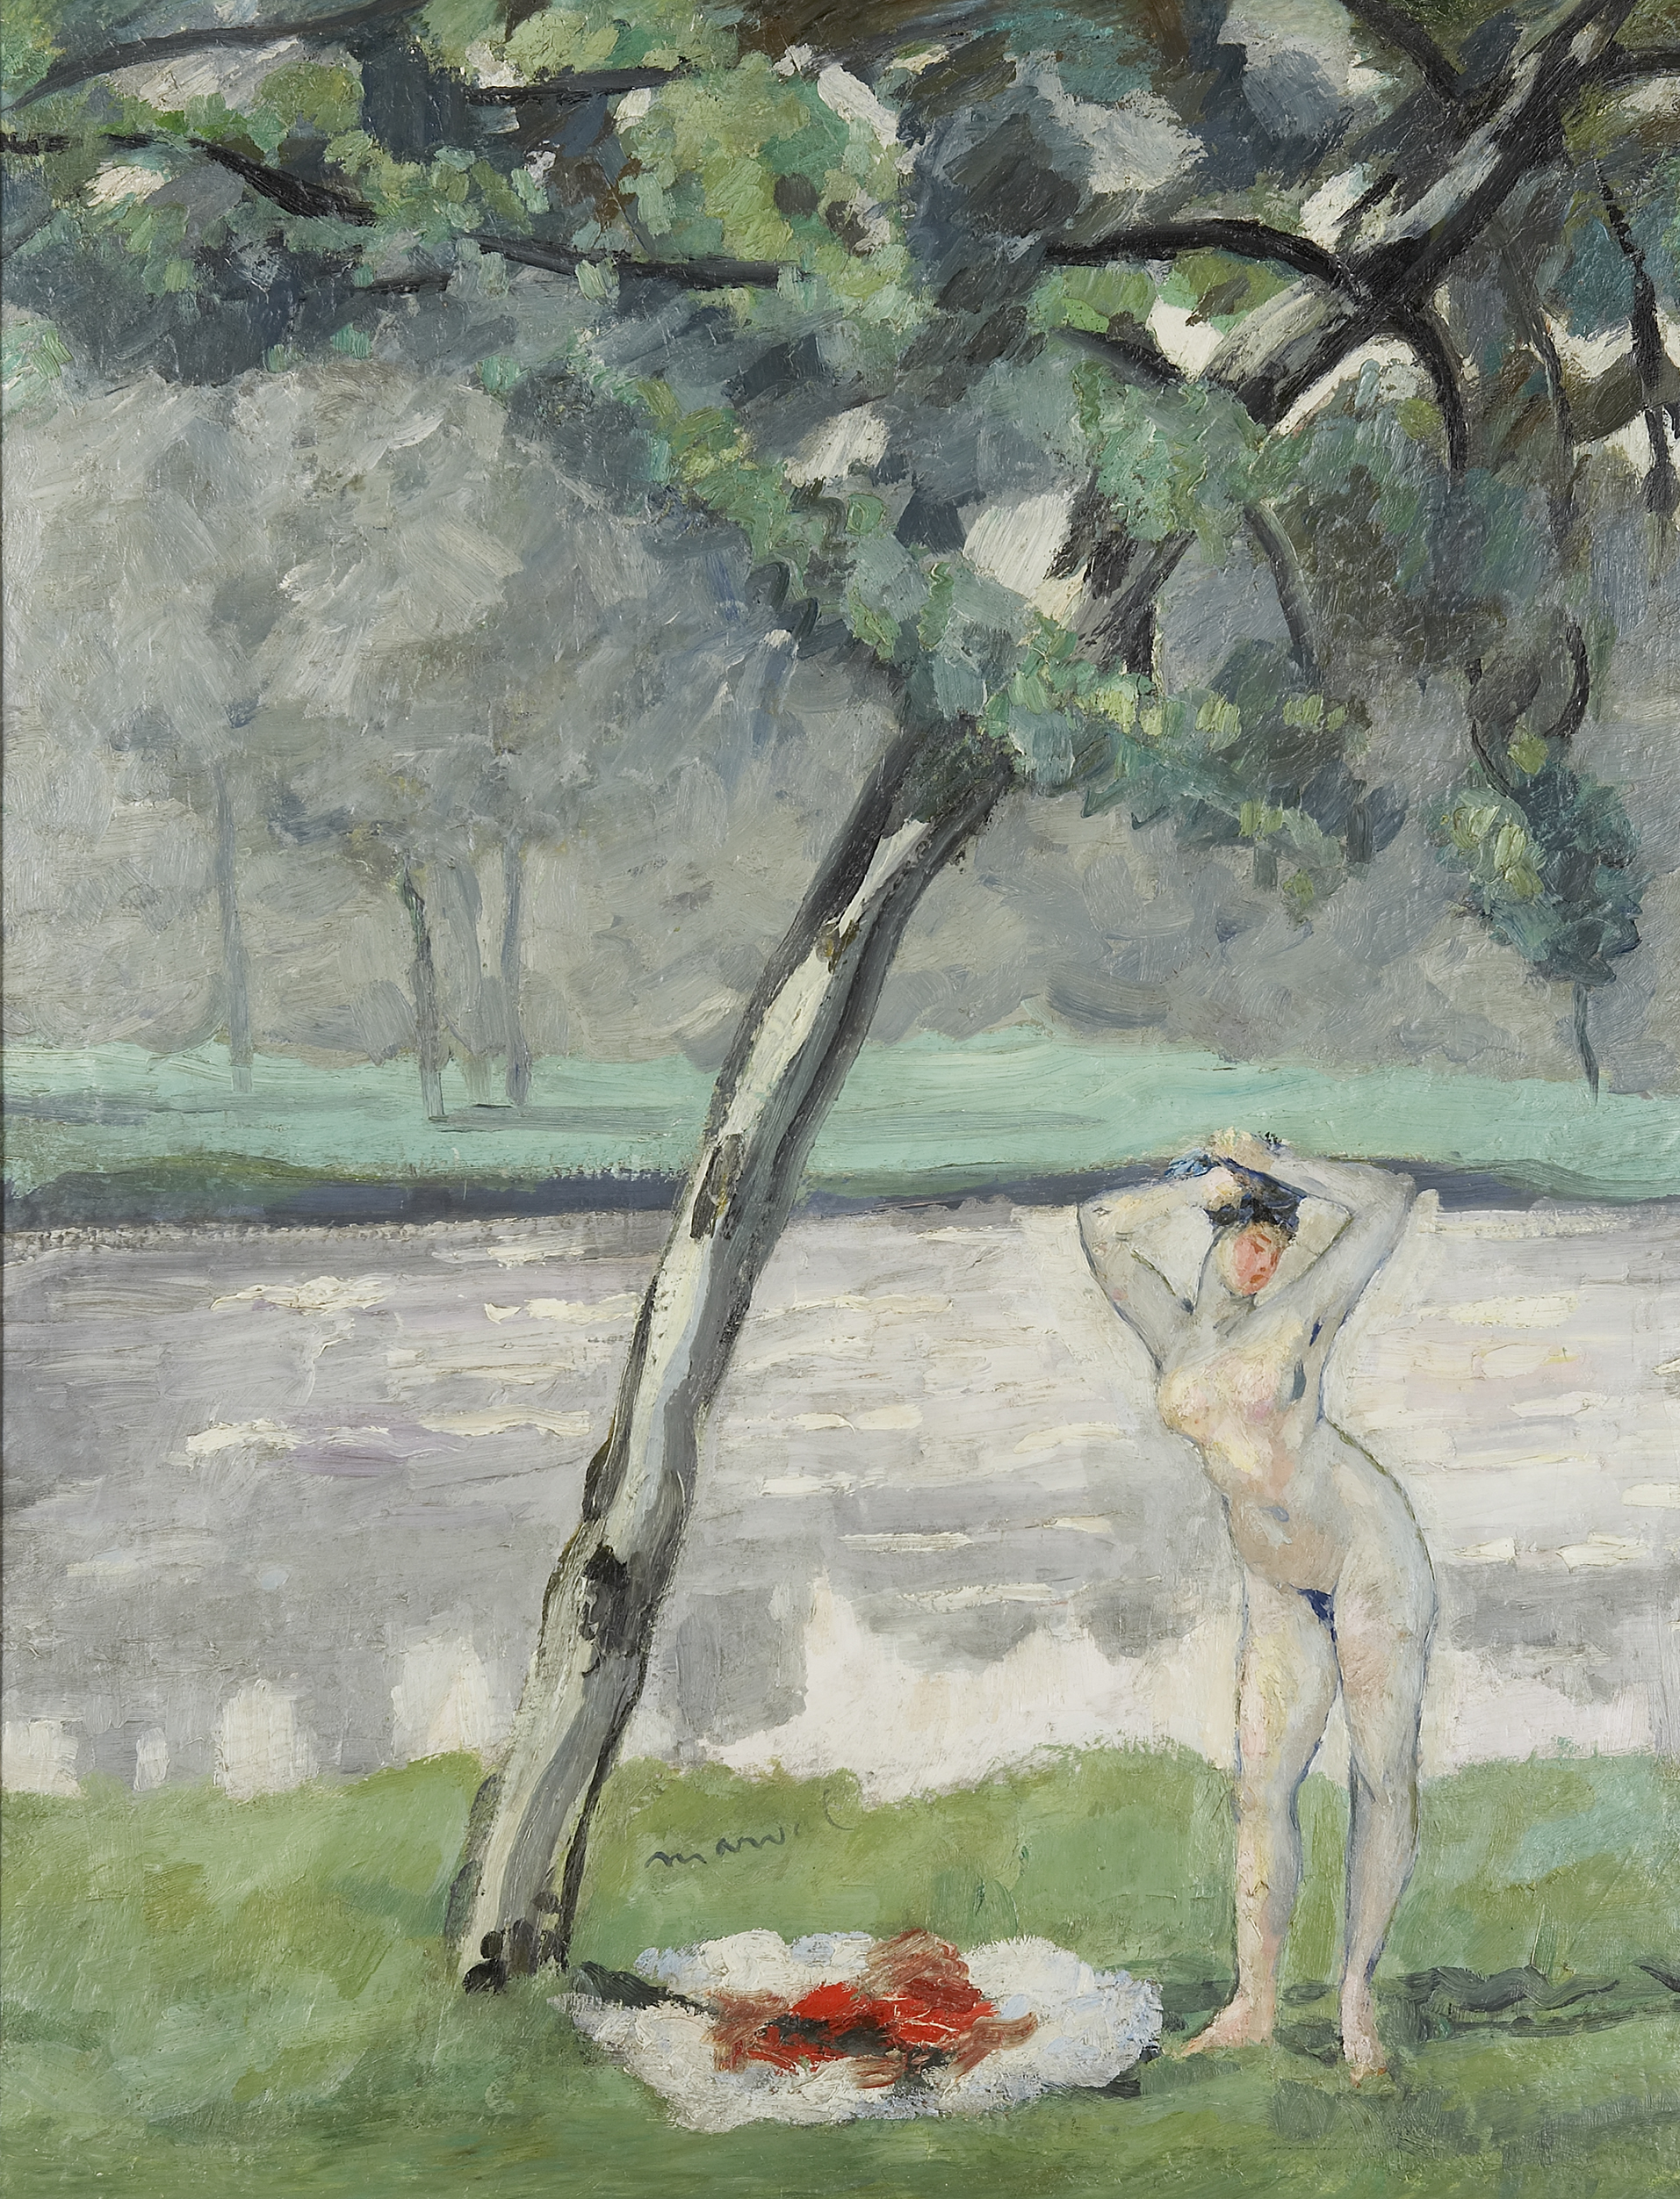 La Baigneuse, tribute to Paul Cézanne, Jacqueline Marval, 1909